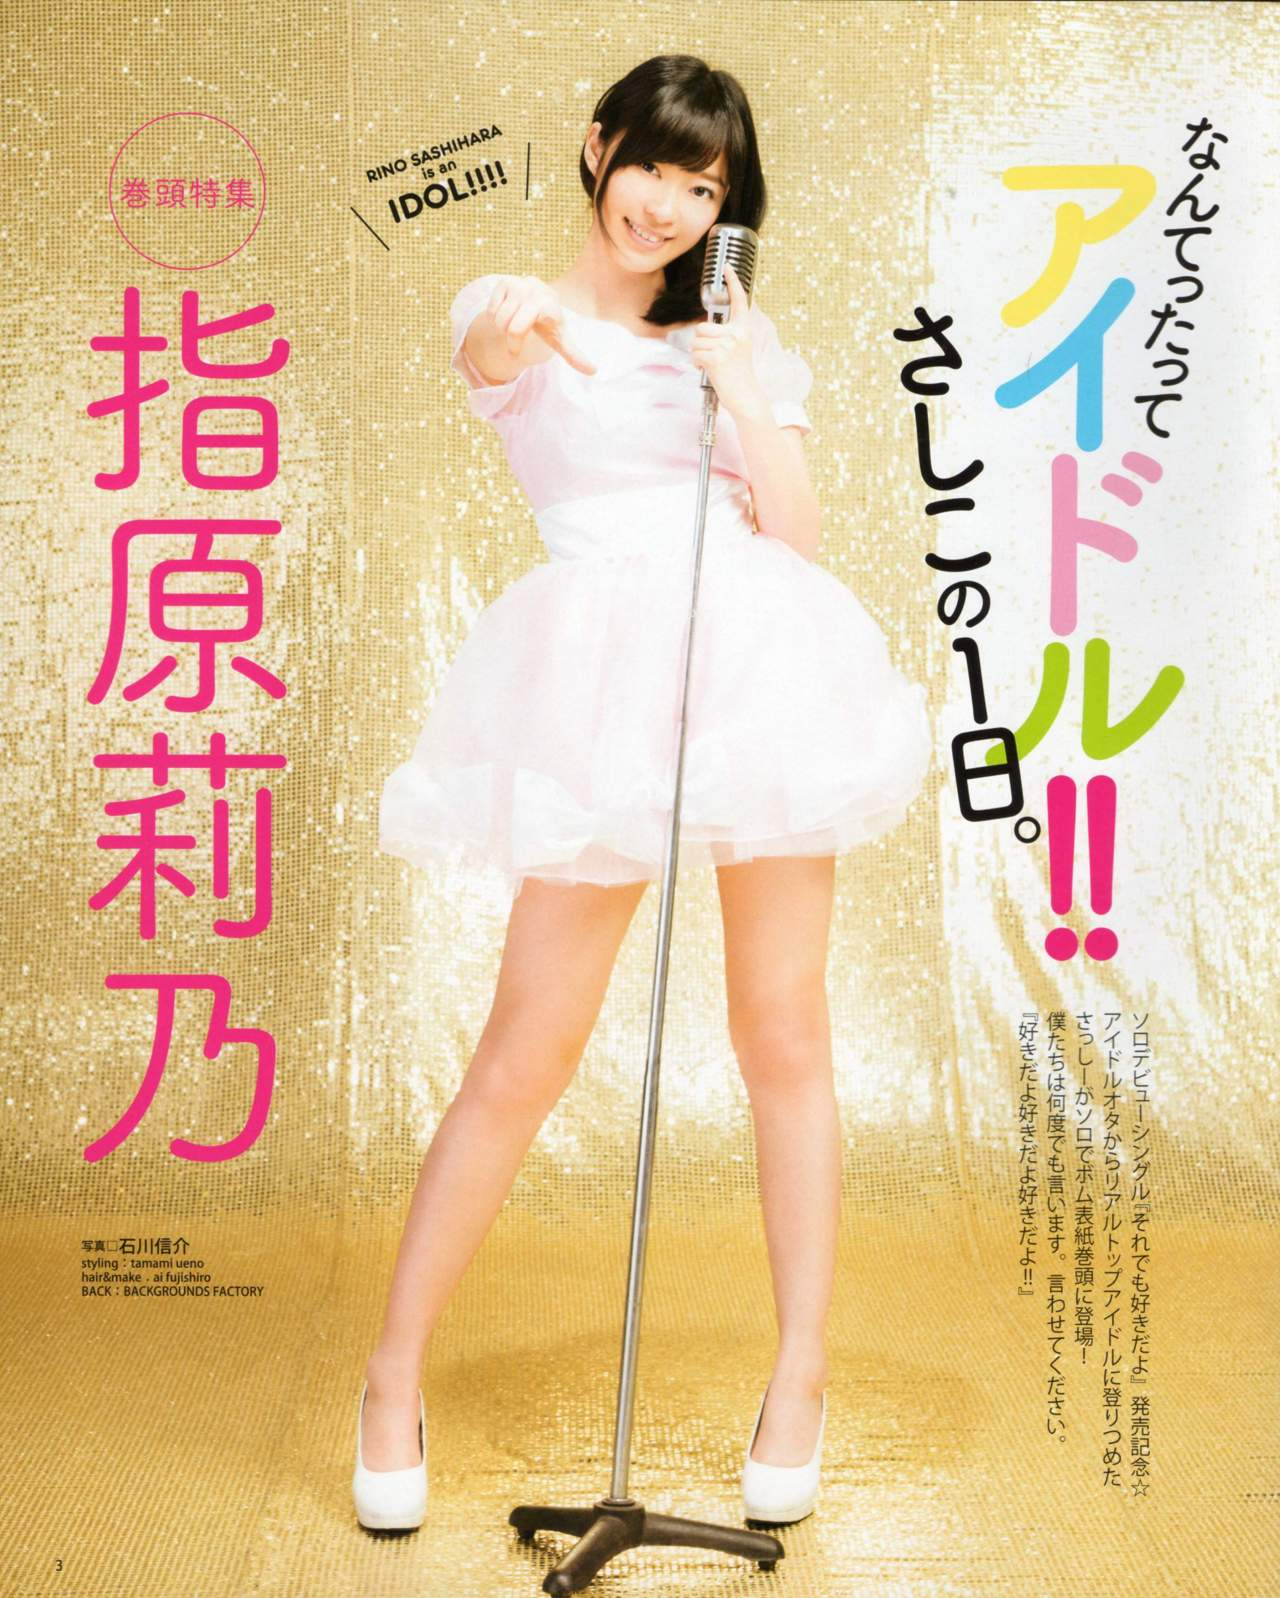 Sashihara Rino 指原莉乃 HKT48, Gravure May 2012 (Sashihara Rino is an IDOL!!!!)